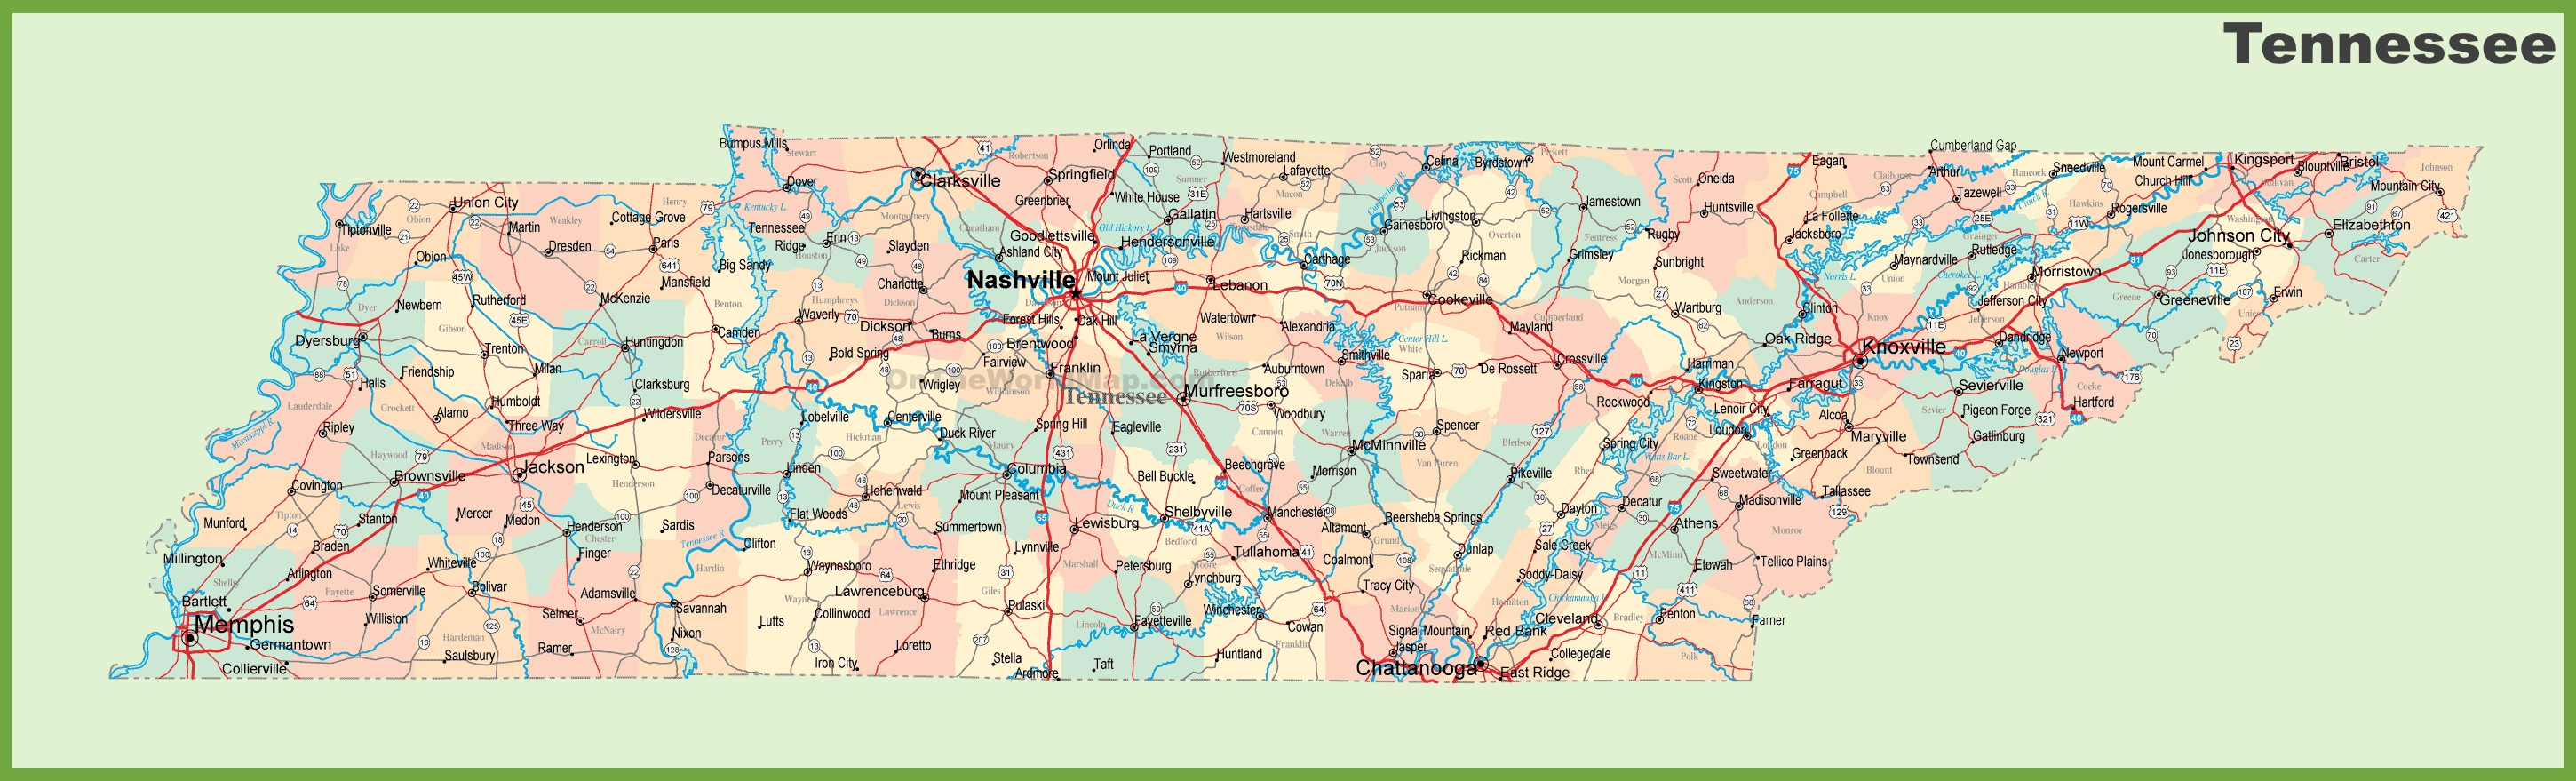 Road map of Tennessee with cities